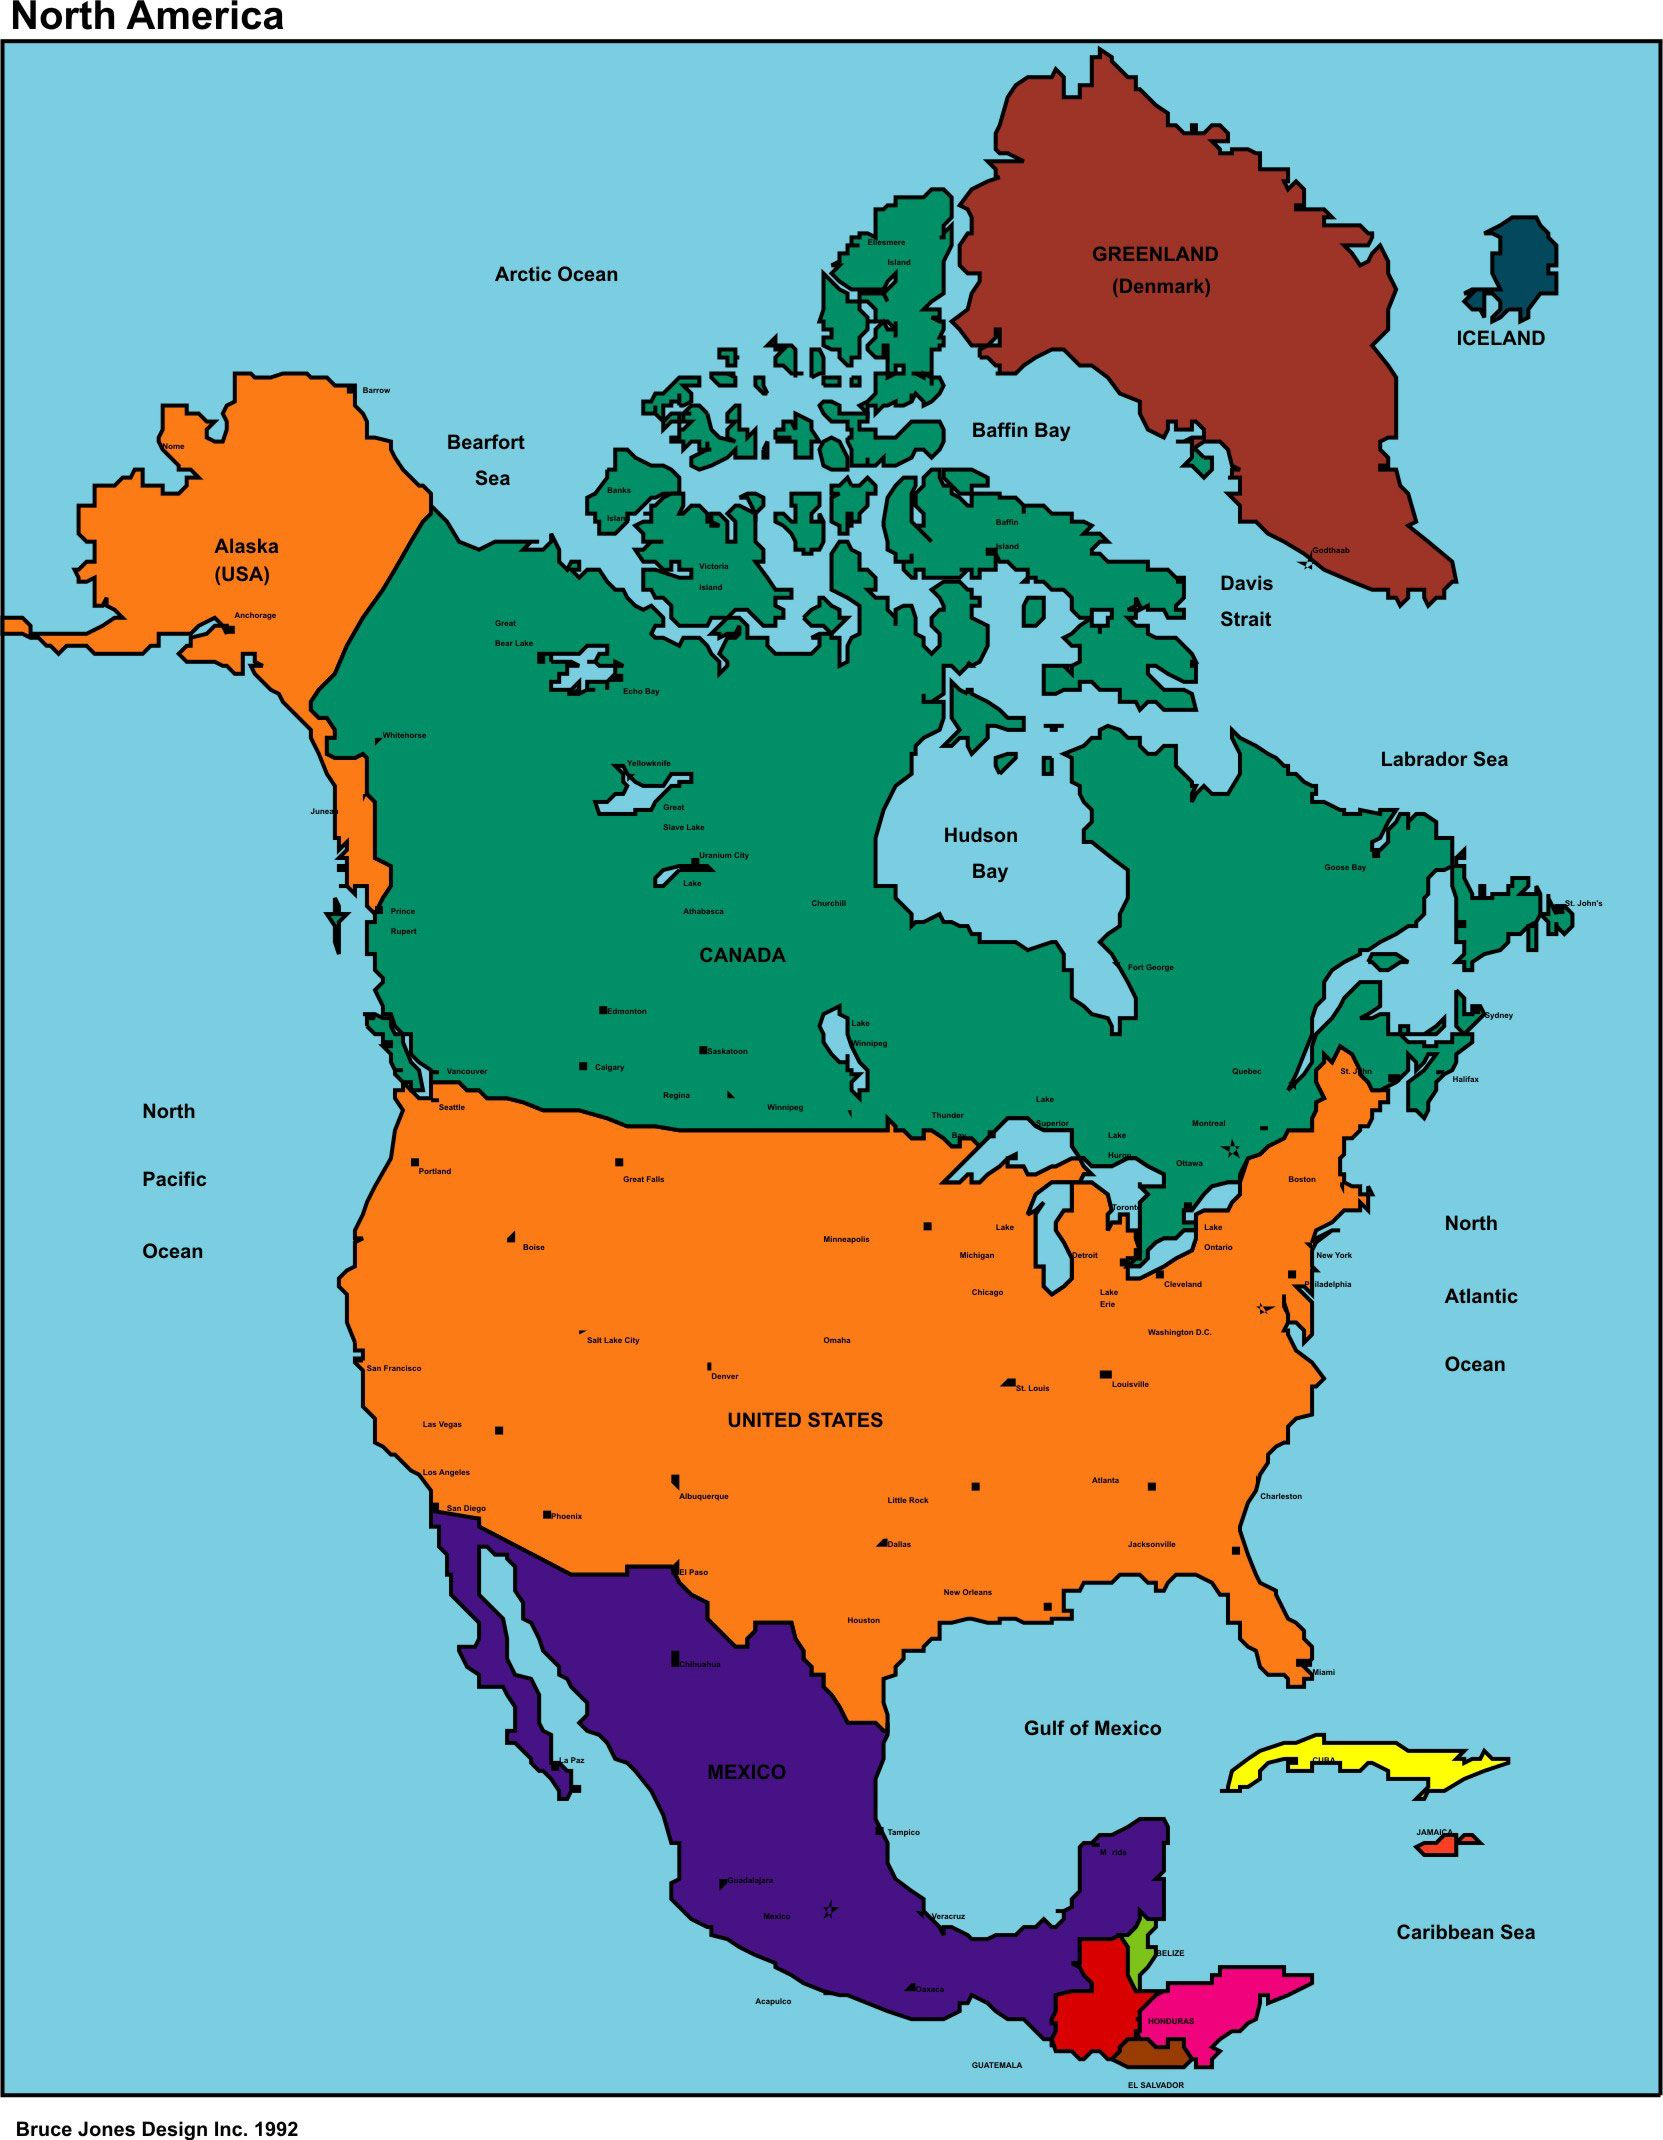 Map Of The North America Free Map Of North America For Online